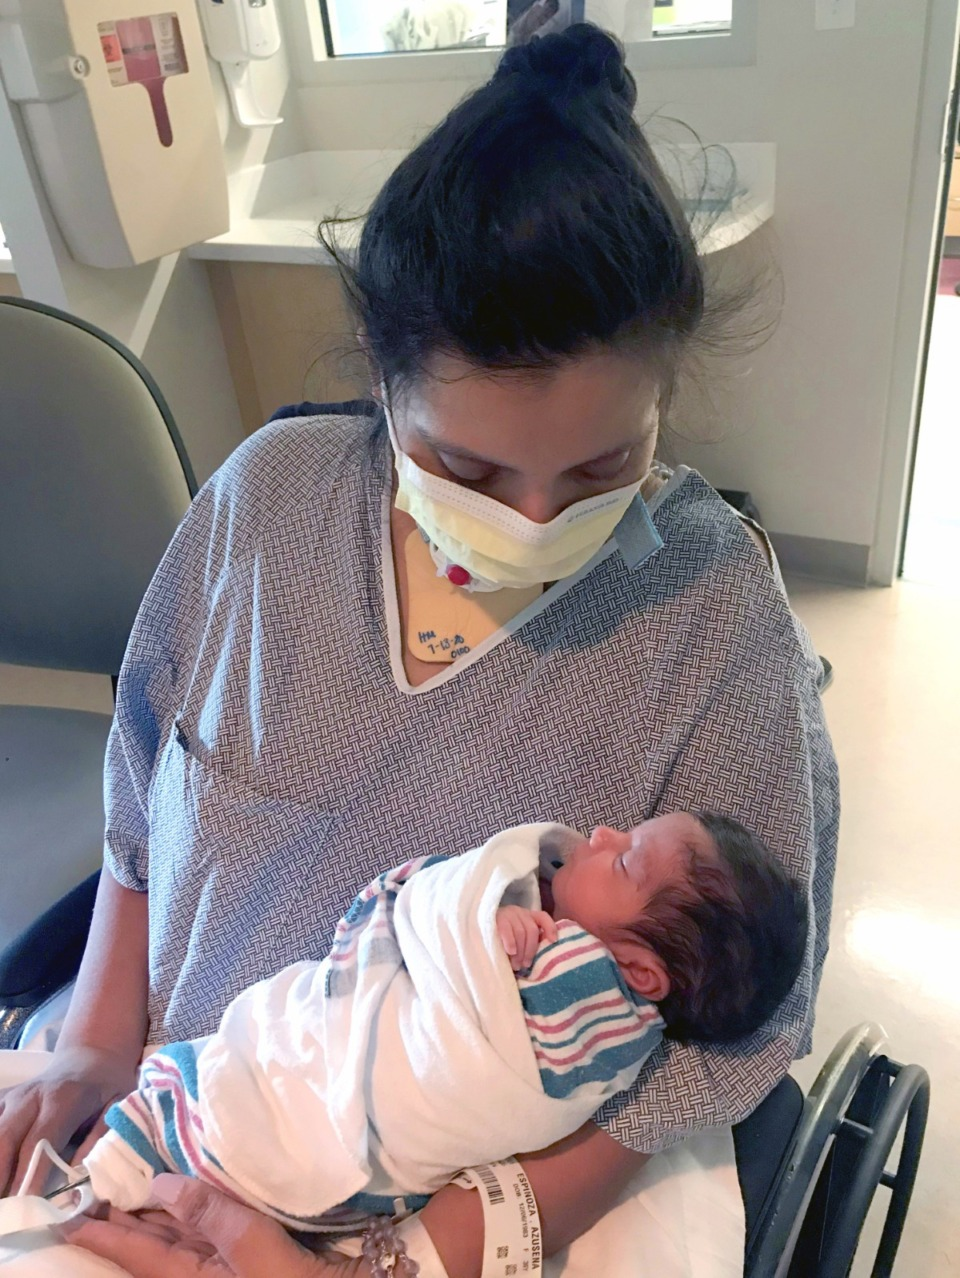 <strong>Susie Espinoza, who was in a coma when she gave birth to her son, met little Brandon in the NICU at Methodist LeBonheur Hospital Germantown.</strong> (Courtesy Methodist LeBonheur Healthcare)